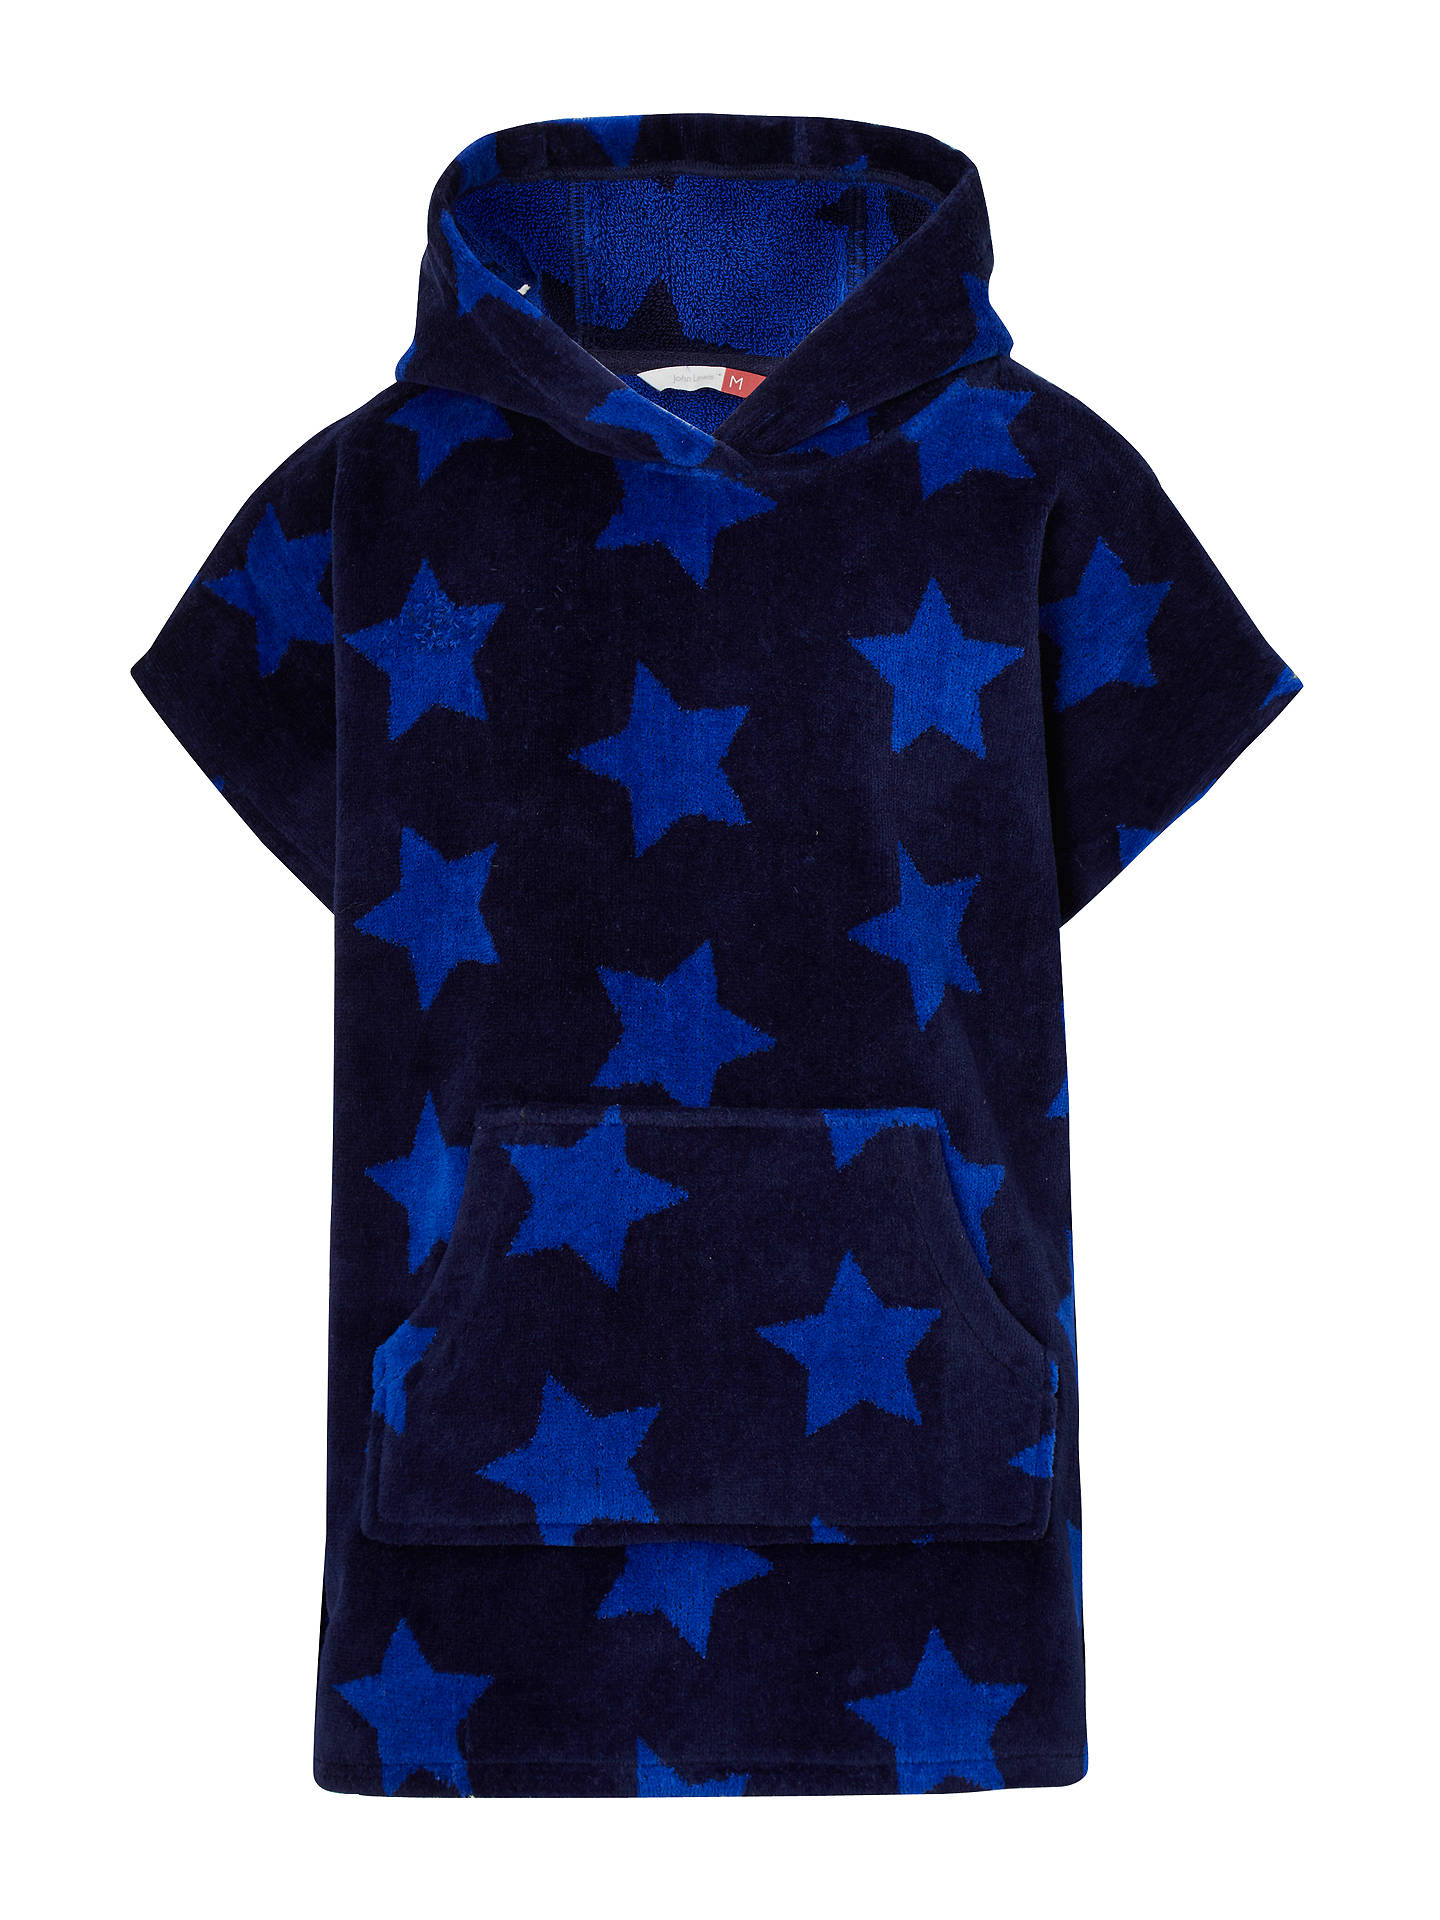 Buy John Lewis & Partners Children's Star Print Poncho, Multi, S Online at johnlewis.com